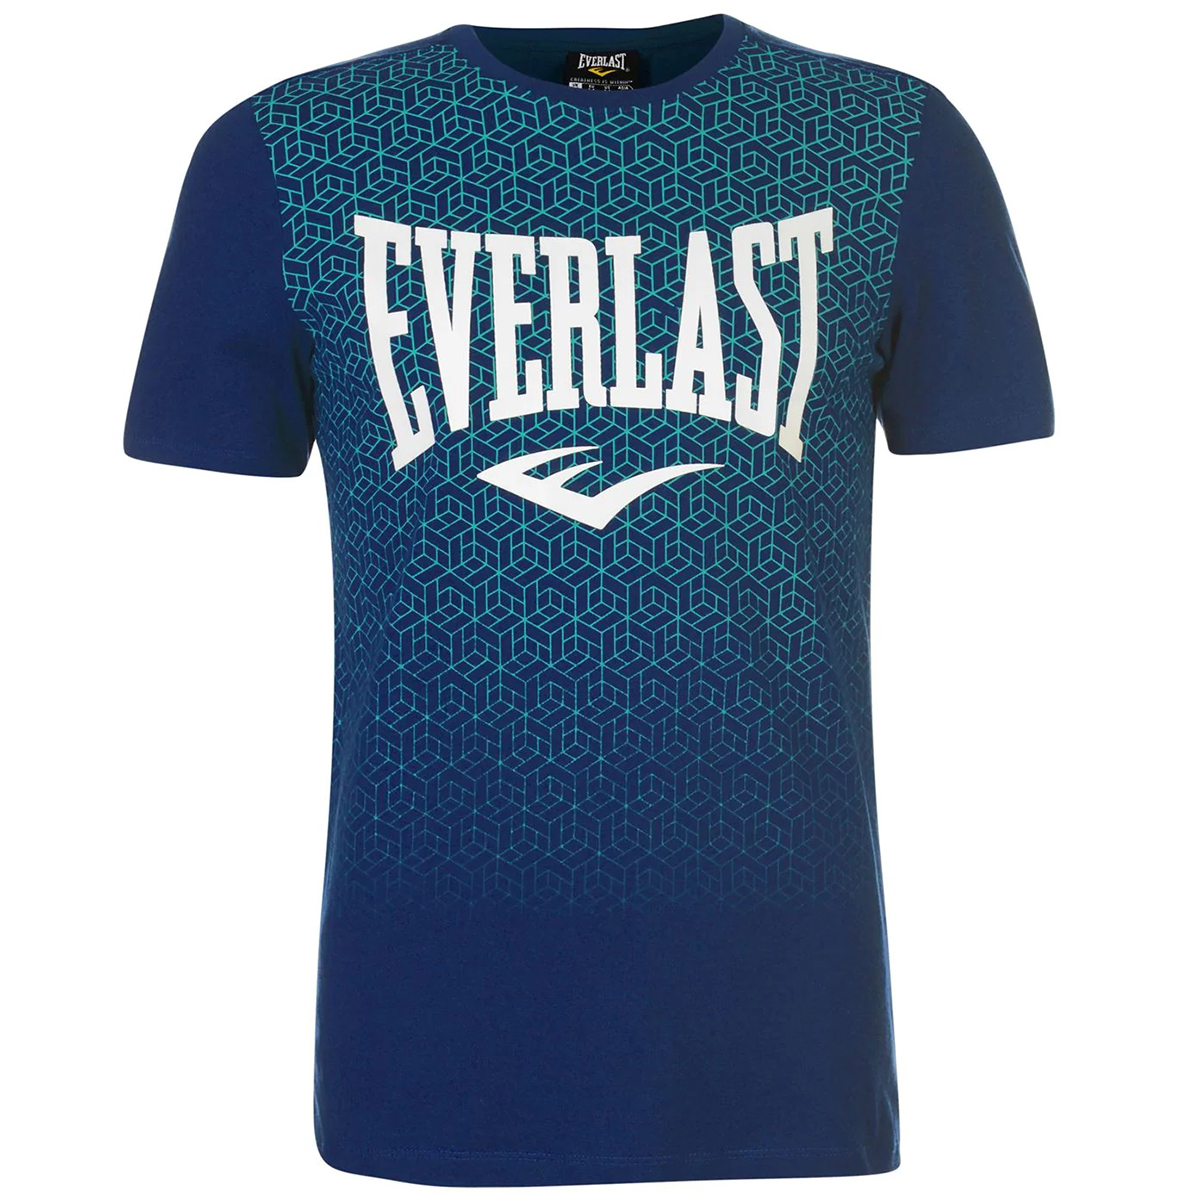 Everlast Men's Geo Print Short-Sleeve Tee - Blue, XL